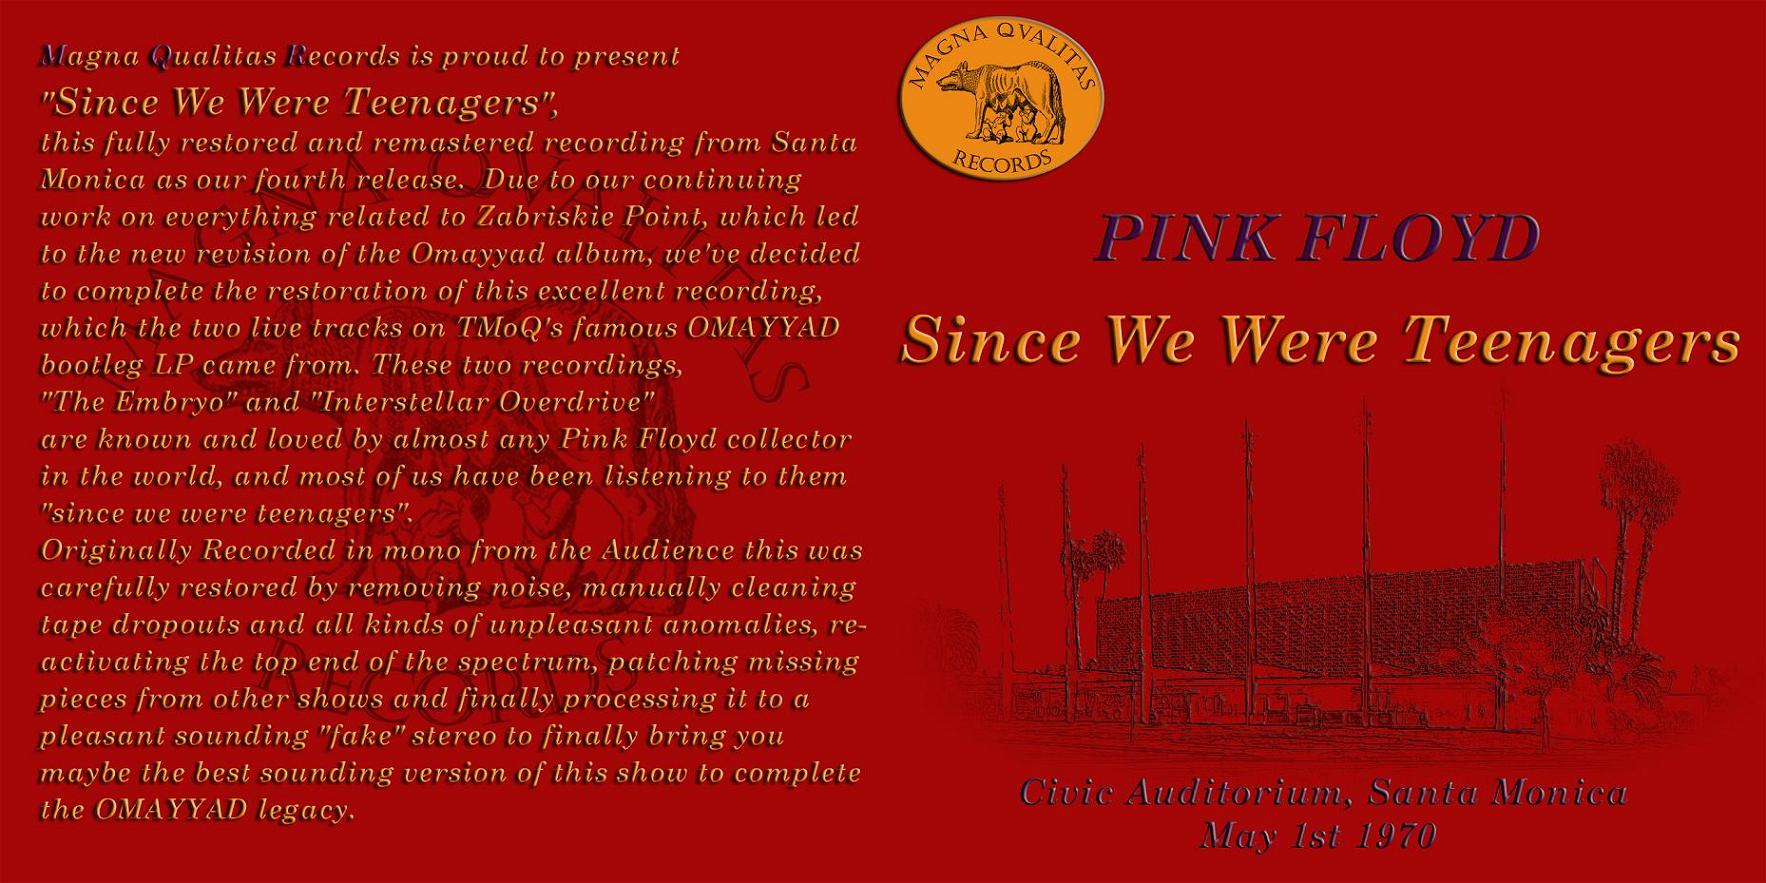 1970-05-01-SINCE_WE_WERE_TEENAGERS-front